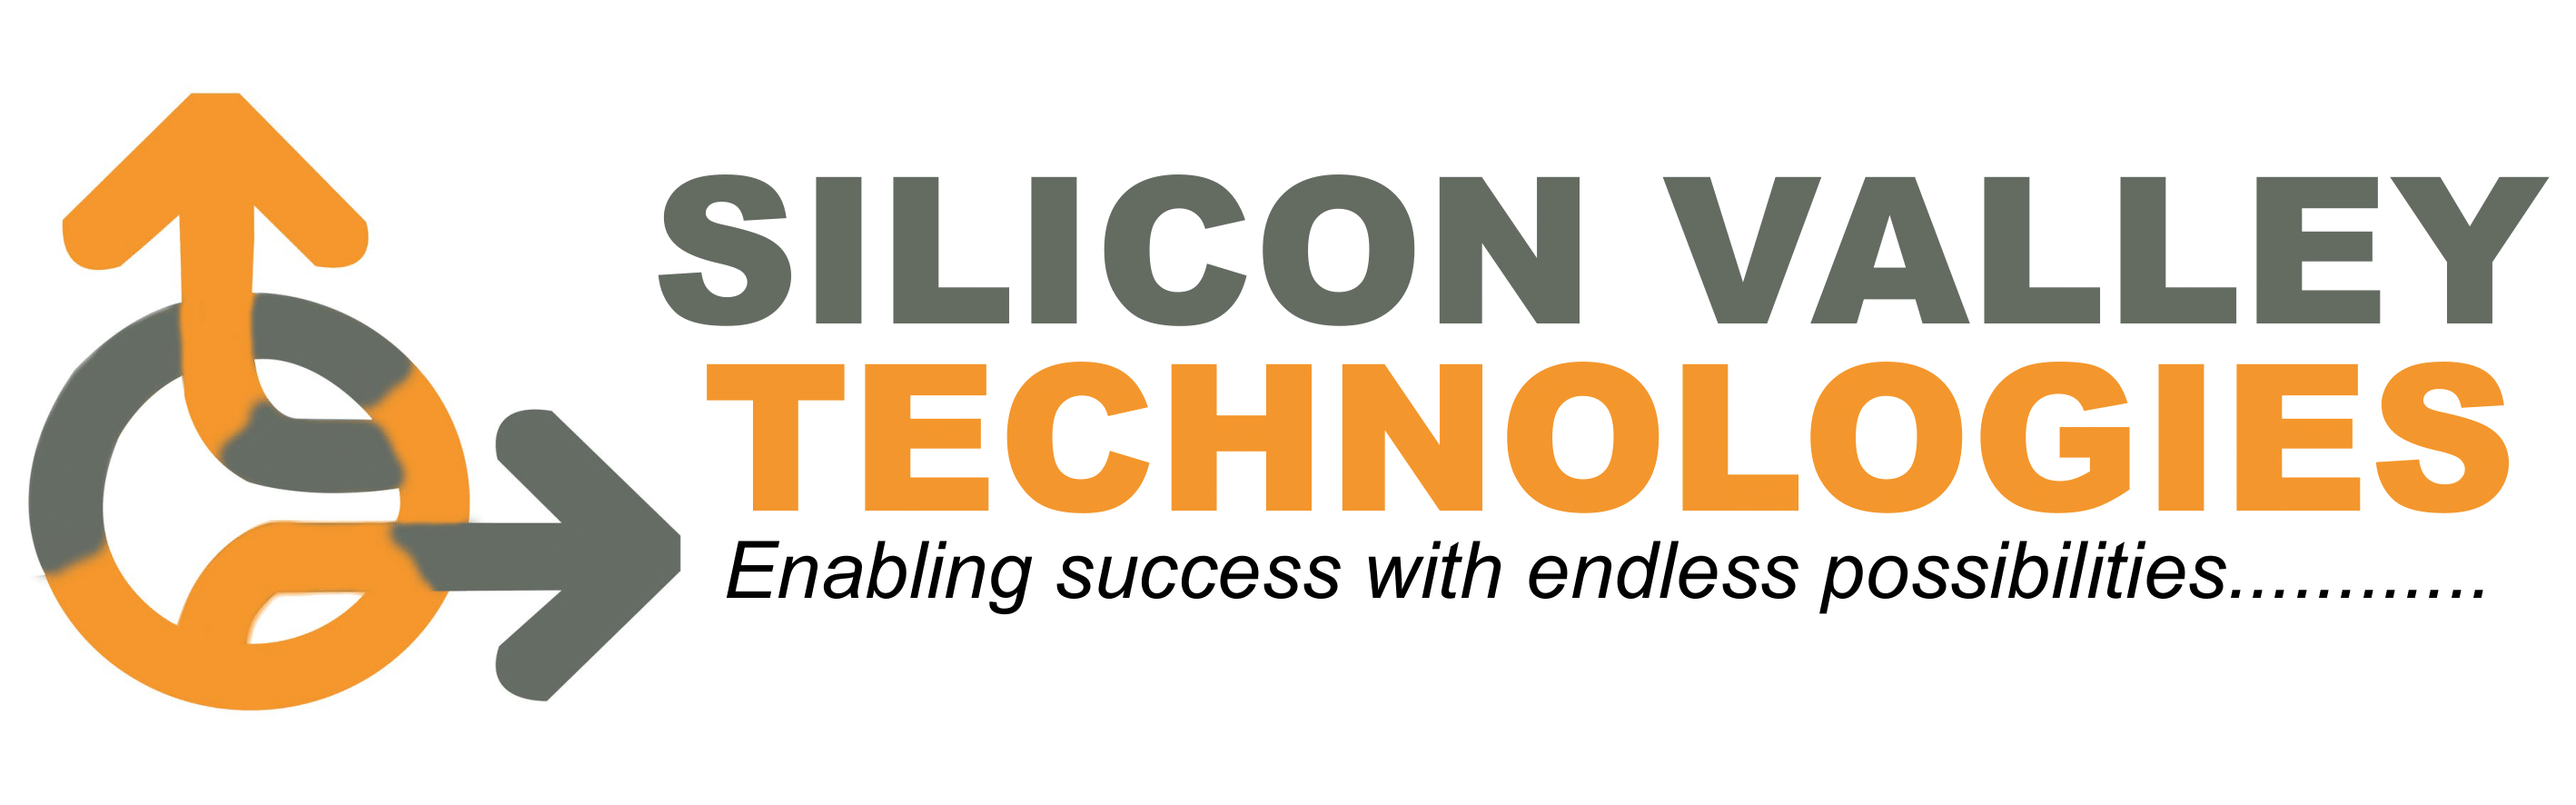 Silicon Valley Technologies Limited